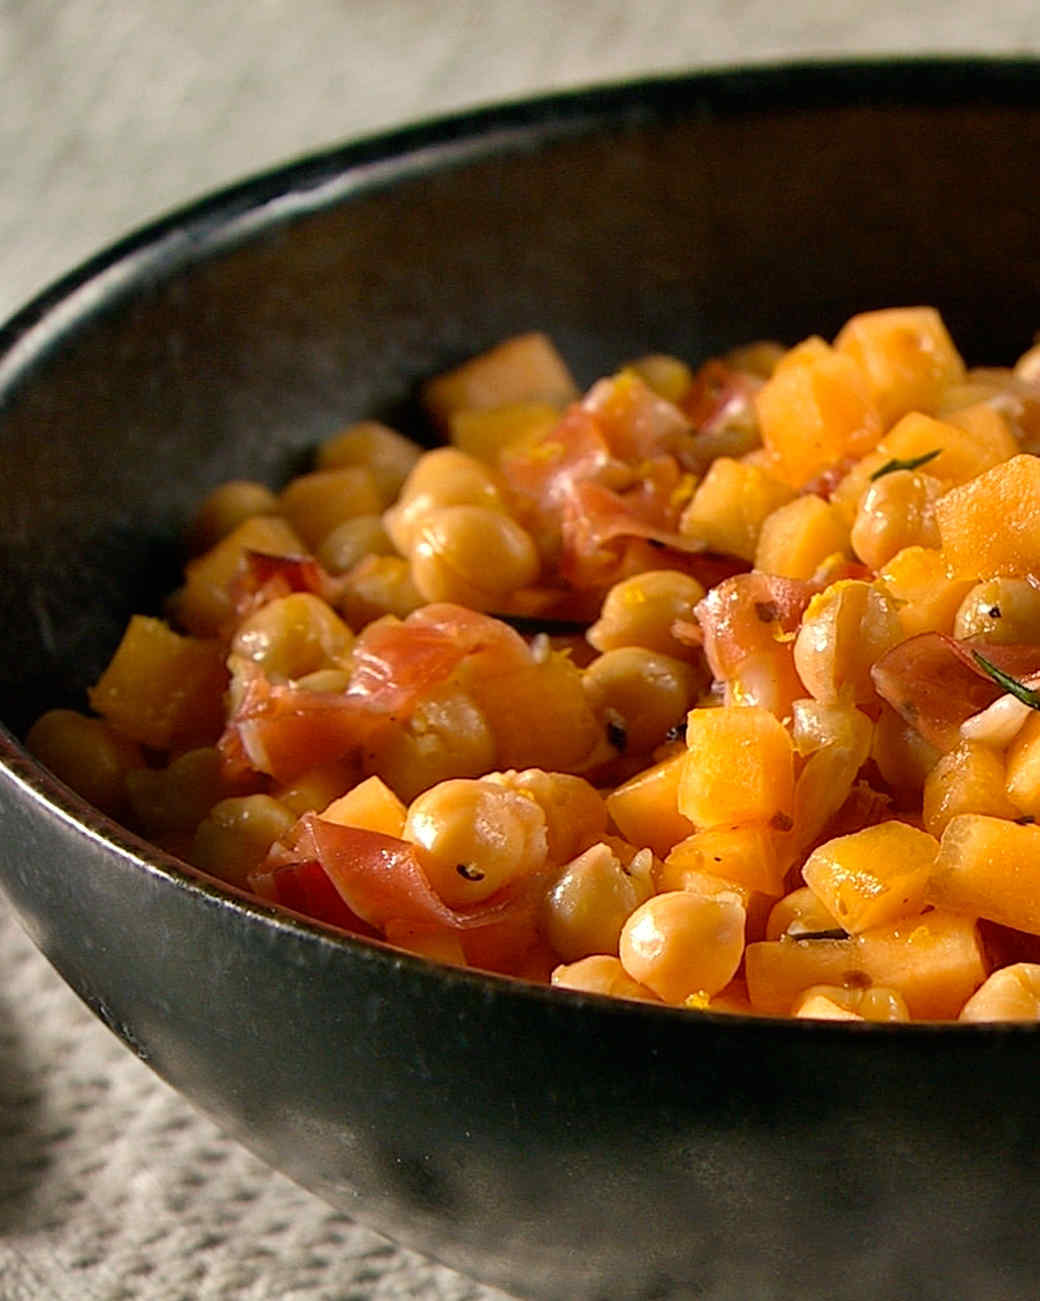 Chickpea, Melon, and Rosemary Salad